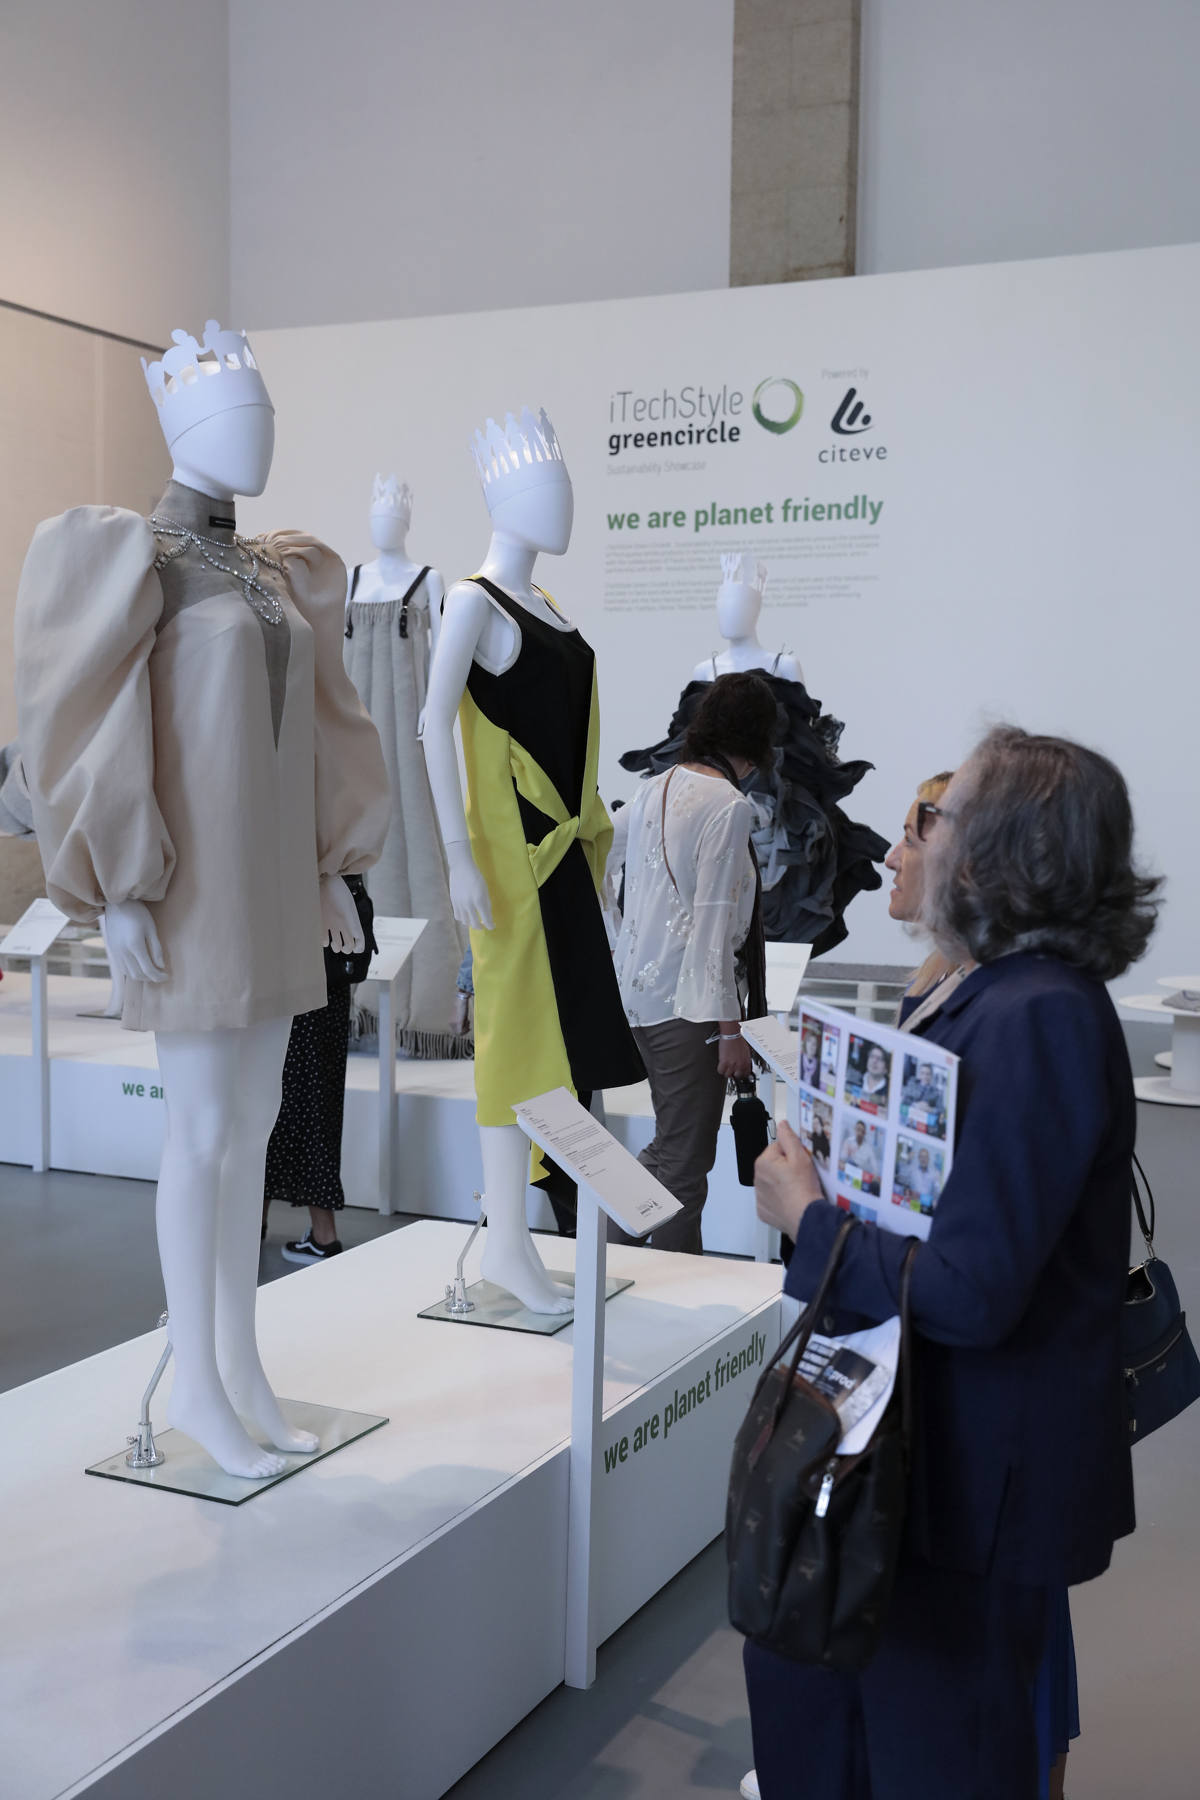 sustainability, sustainable fashion, sustainable fabrics, sustainable textiles, Joaps, Manuel Serrao, Selectiva Moda, Citeve, Scorecode Texteis, Pe de Chumbo, Tenowa, A. Sampaio & FilhosFiberPrint, Gonçalo Peixoto, Riopele Texteis, sostenibilidad, medio ambiente, medioambiente, Portugal, Modtissimo, Green Circle, iTechStyle, ,